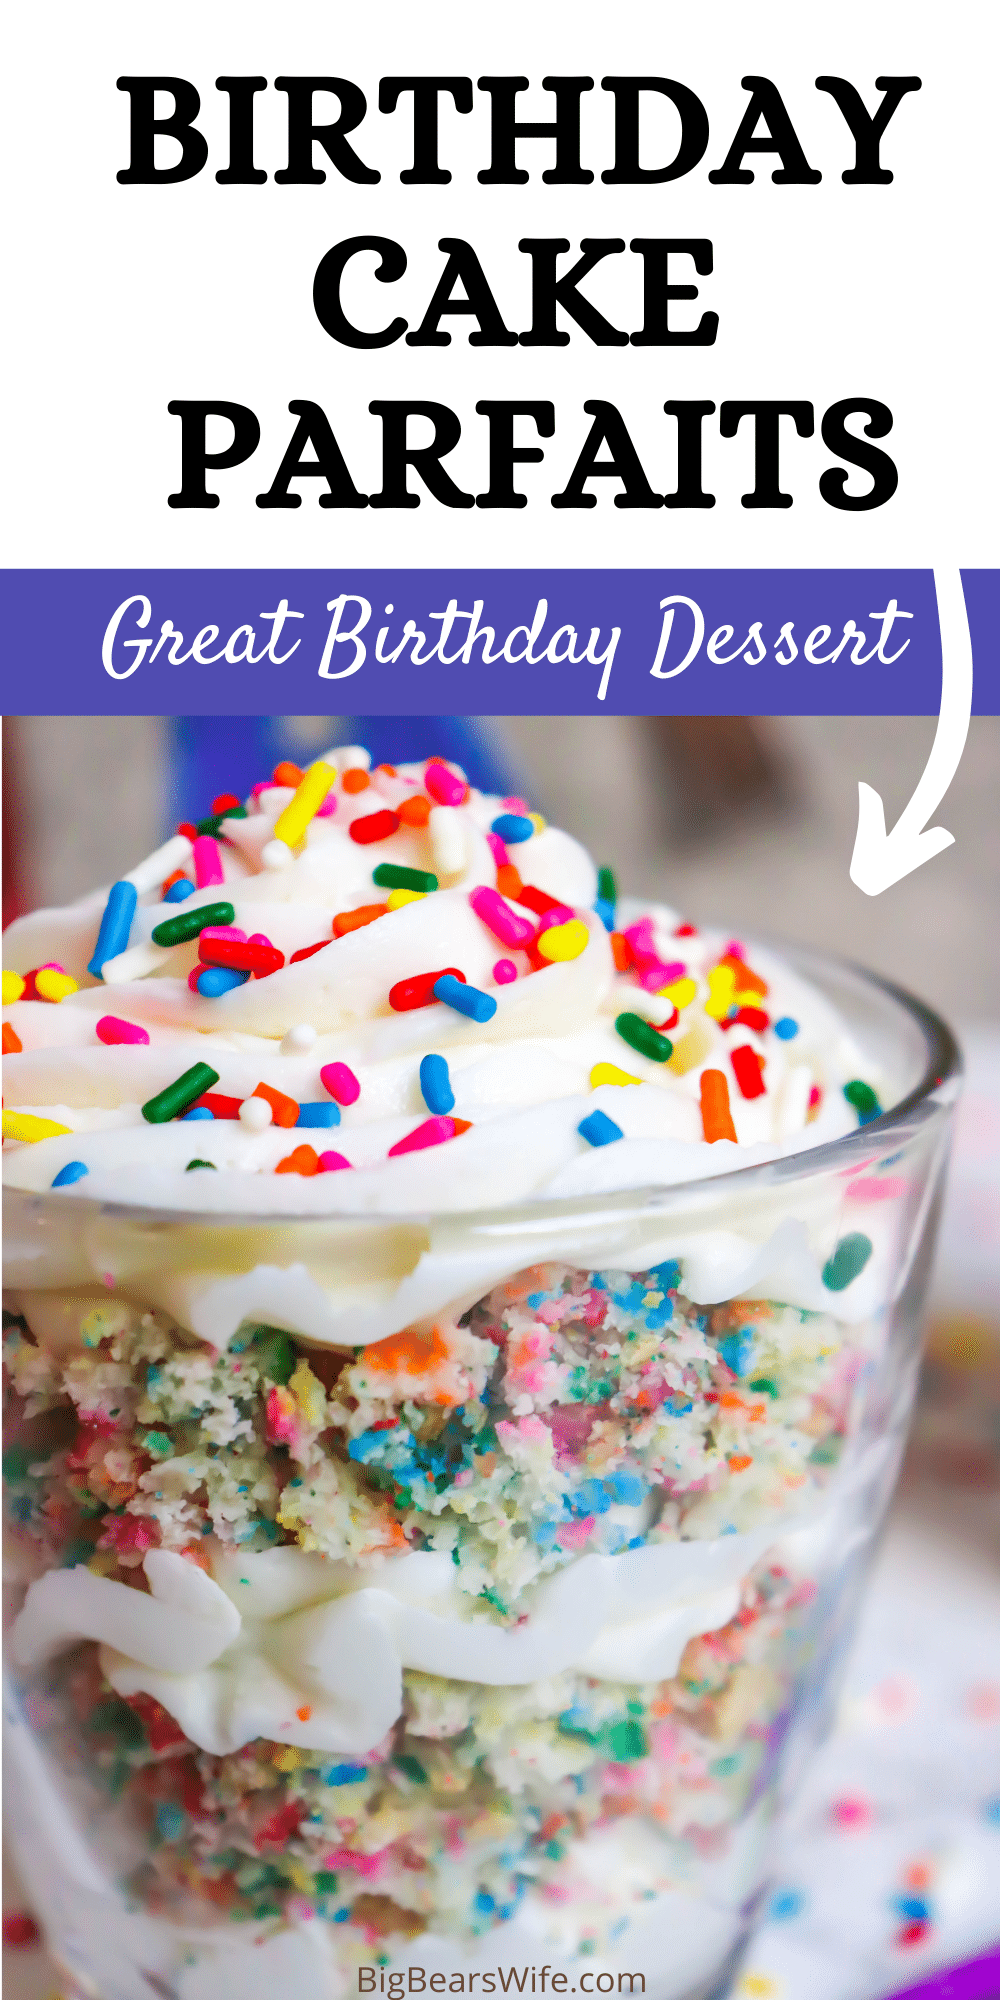 Time to celebrate a birthday? These fun Birthday Cake Parfaits are perfect for birthday celebrations! Super easy to make and full of that classic birthday cake flavor and rainbow sprinkles! via @bigbearswife